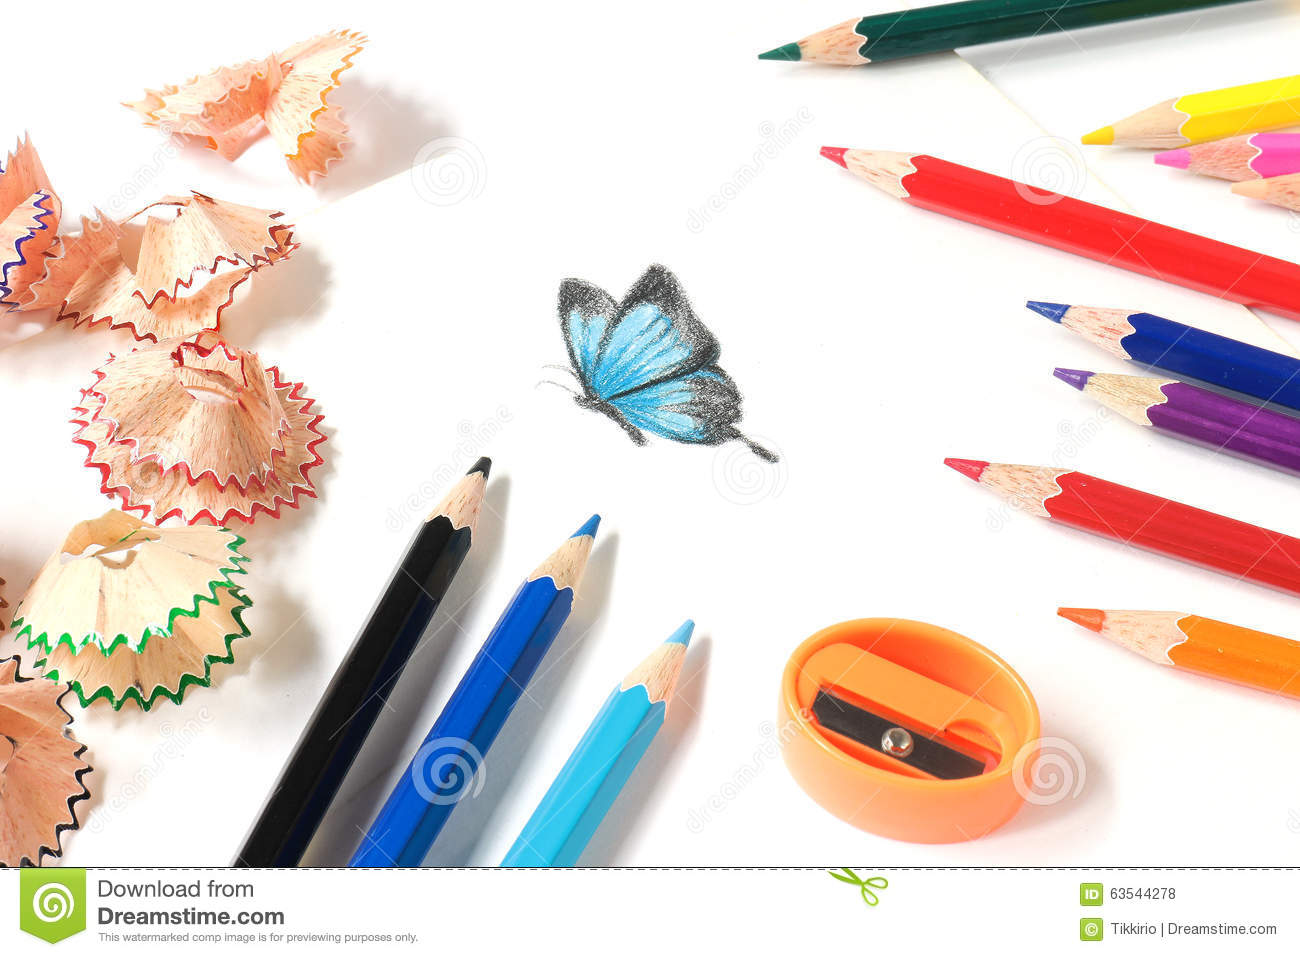 Colored pencil sharpening and butterfly drawing